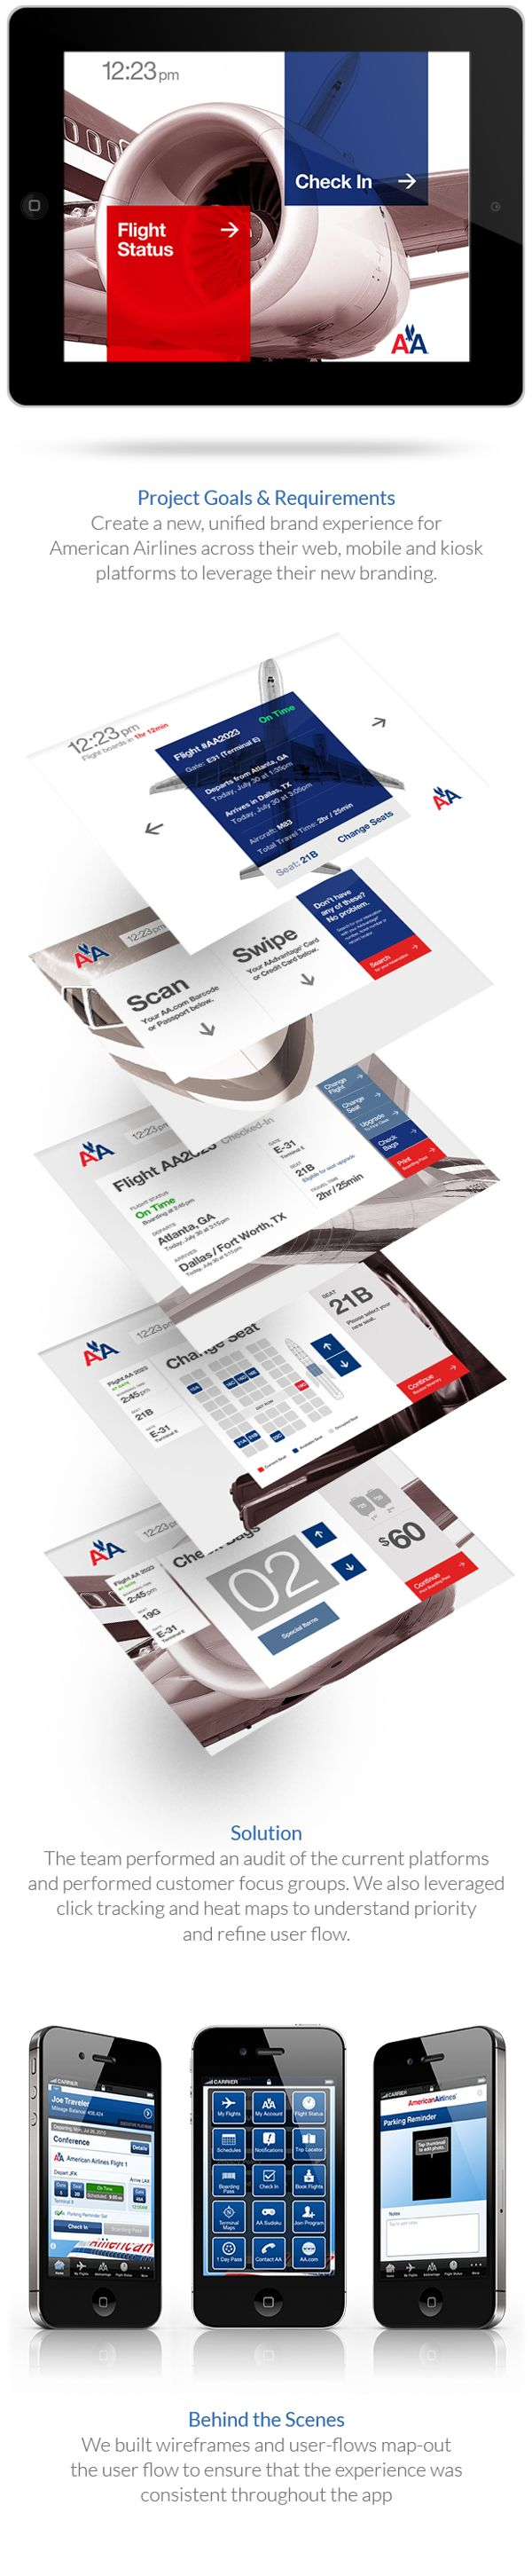 American Airlines Web  Mobile Kiosk by Steven Fisher, via Behance